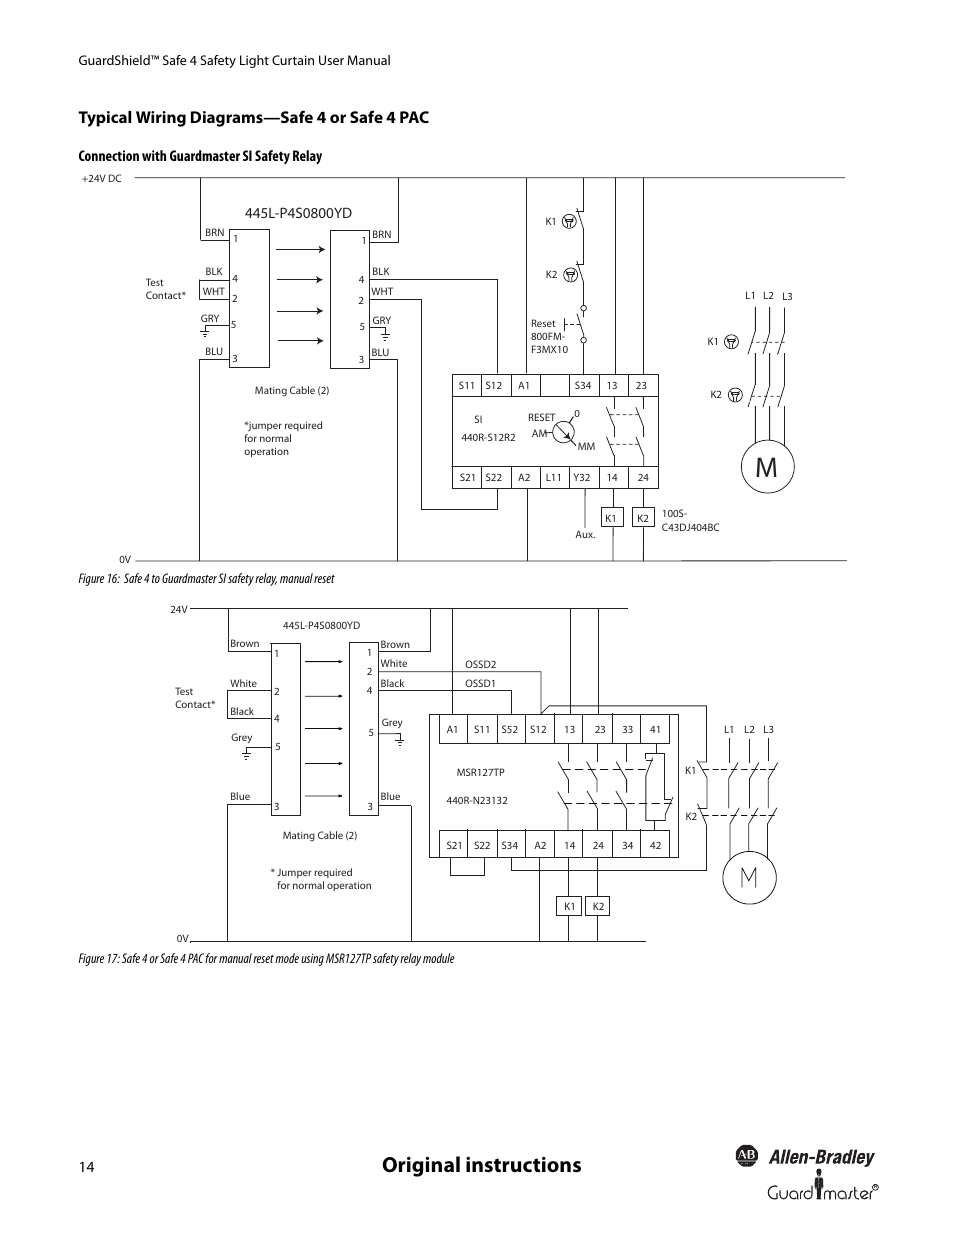 hight resolution of original instructions typical wiring diagrams safe 4 or safe 4 pac connection with guardmaster si safety relay rockwell automation 445l guardshield safe